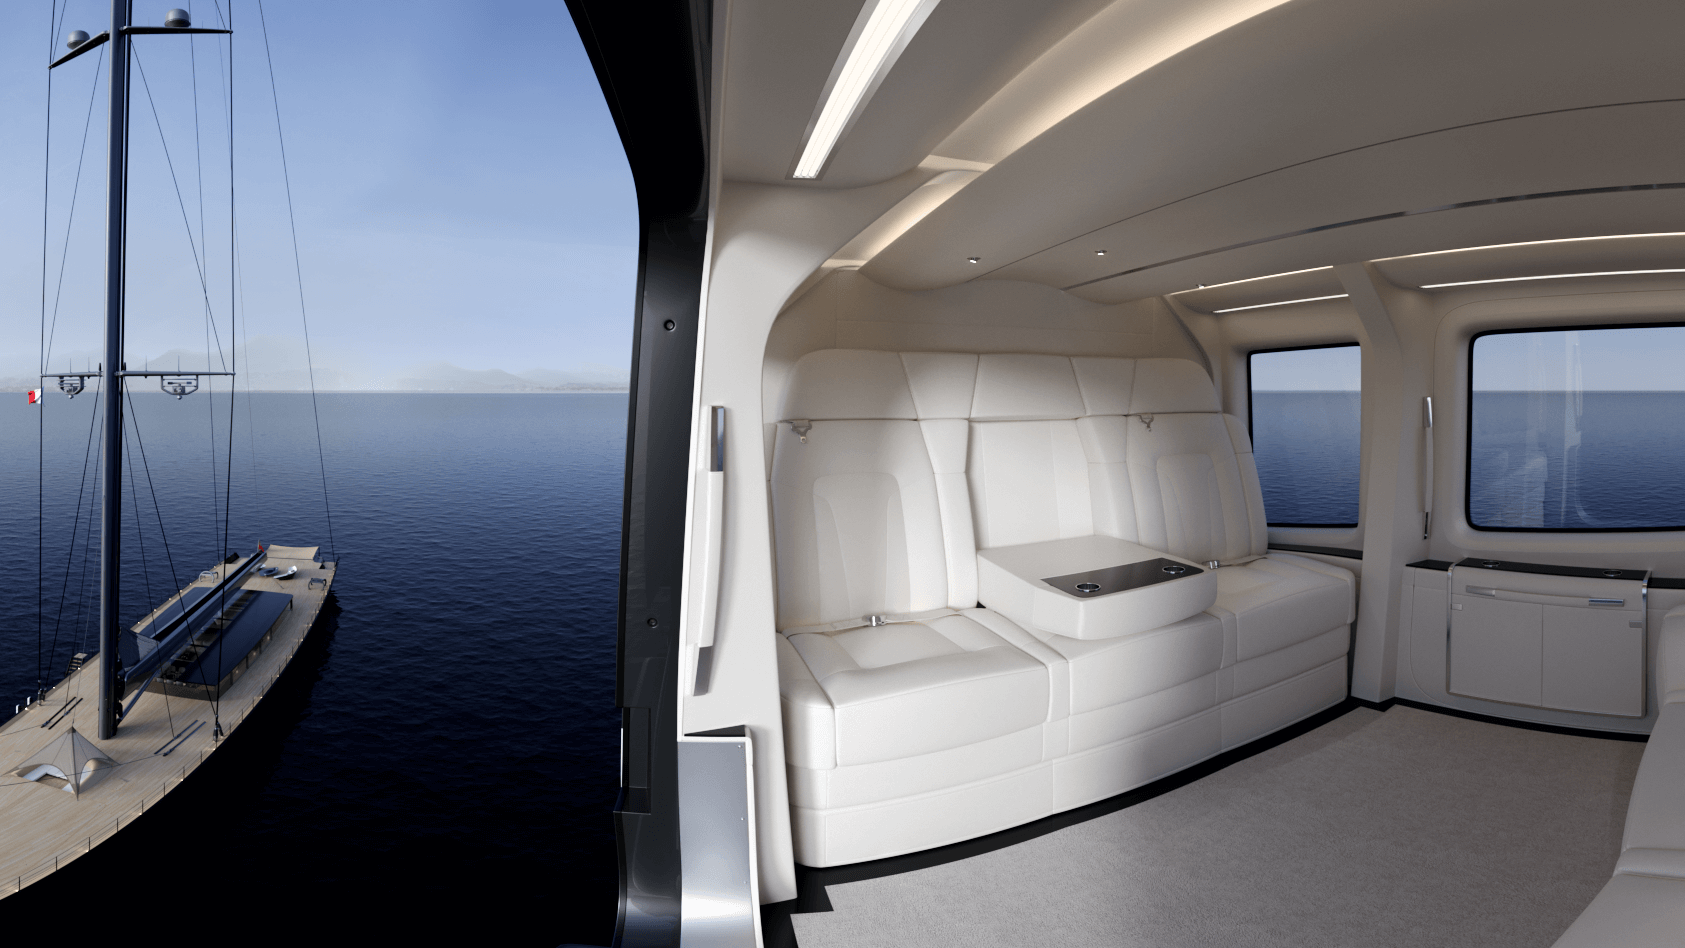 APEX850 by Malcolm McKeon and Royal Huisman - RenderingByAltspace_cam08_day half 1 JVT